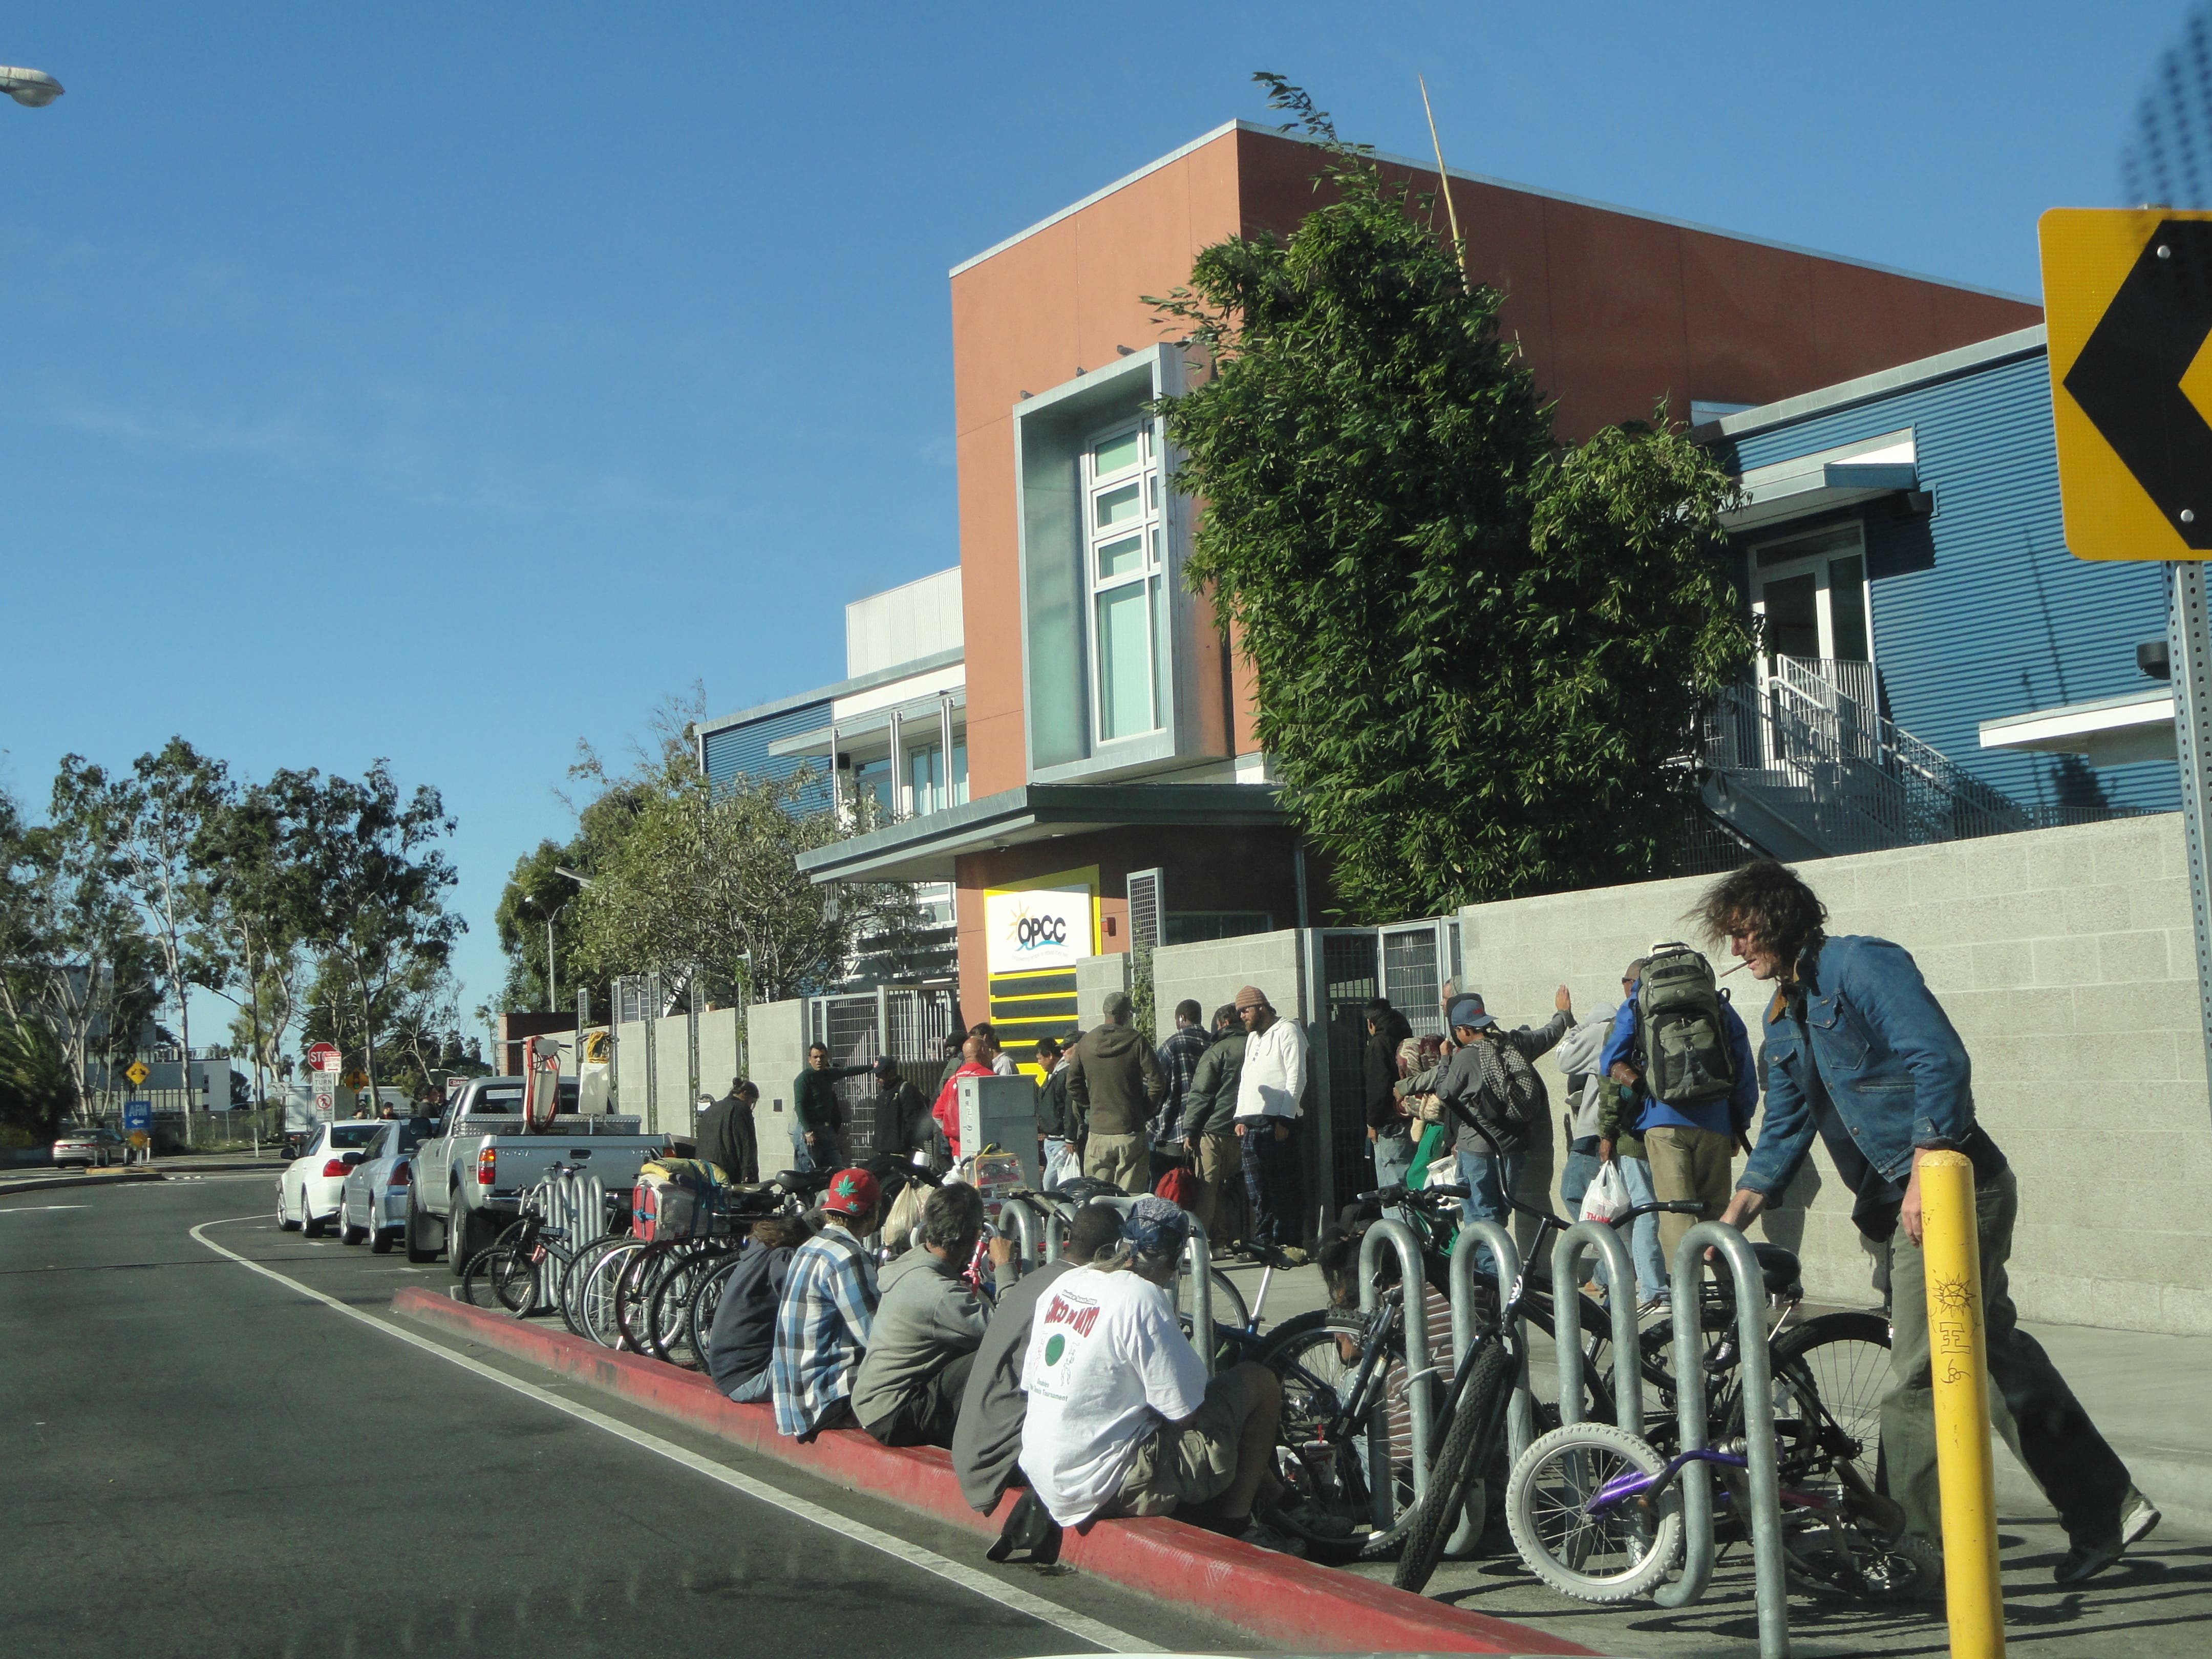 Number of Homeless People in Santa Monica Stayed Static in